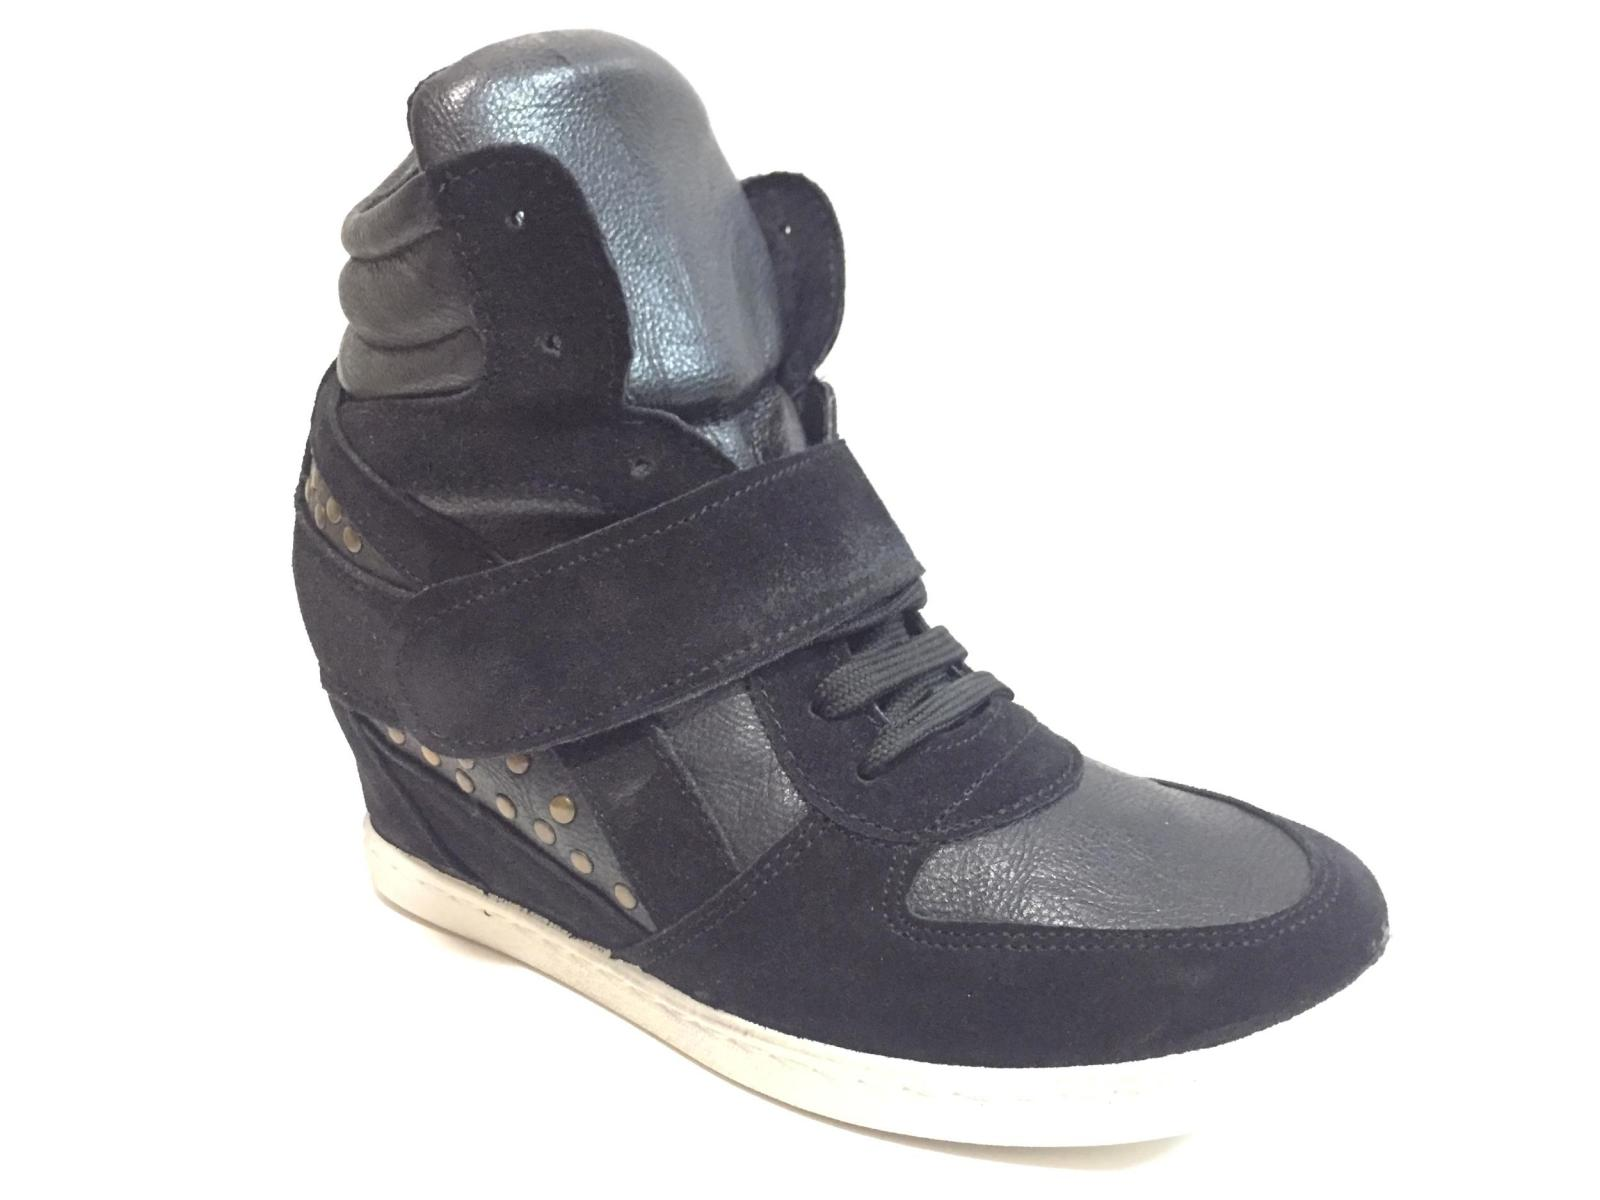 SCARPE SNEAKERS ALTE CASUAL DONNA KIOSS 20 1 PELLE NERO ORIGINALE AI NEW